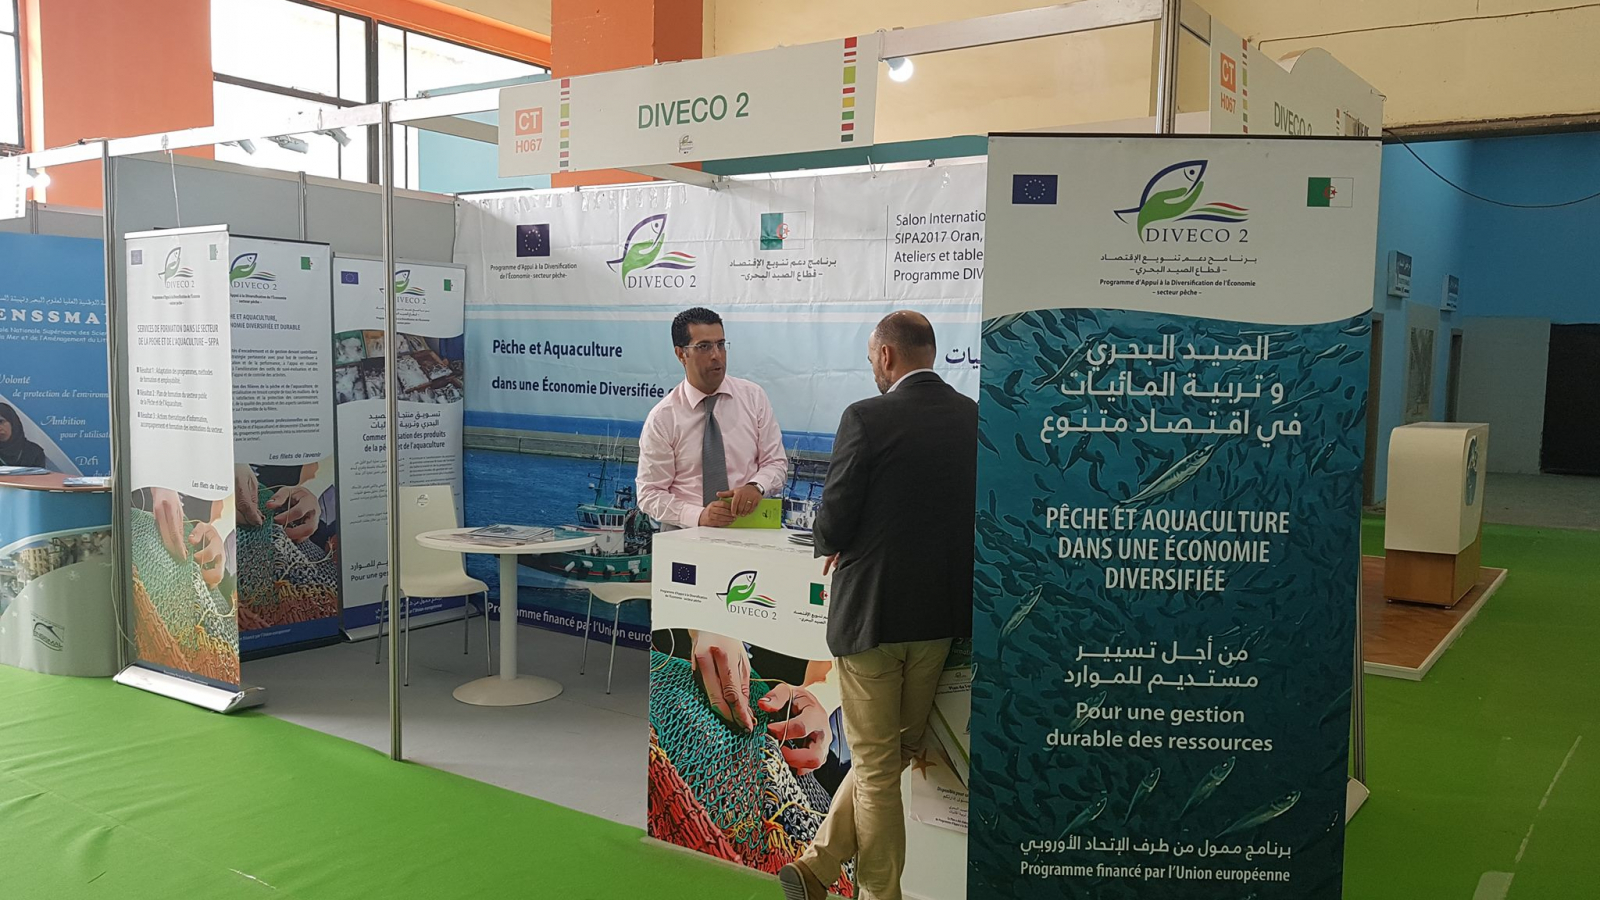 The EU supports the sector of fisheries in Algeria